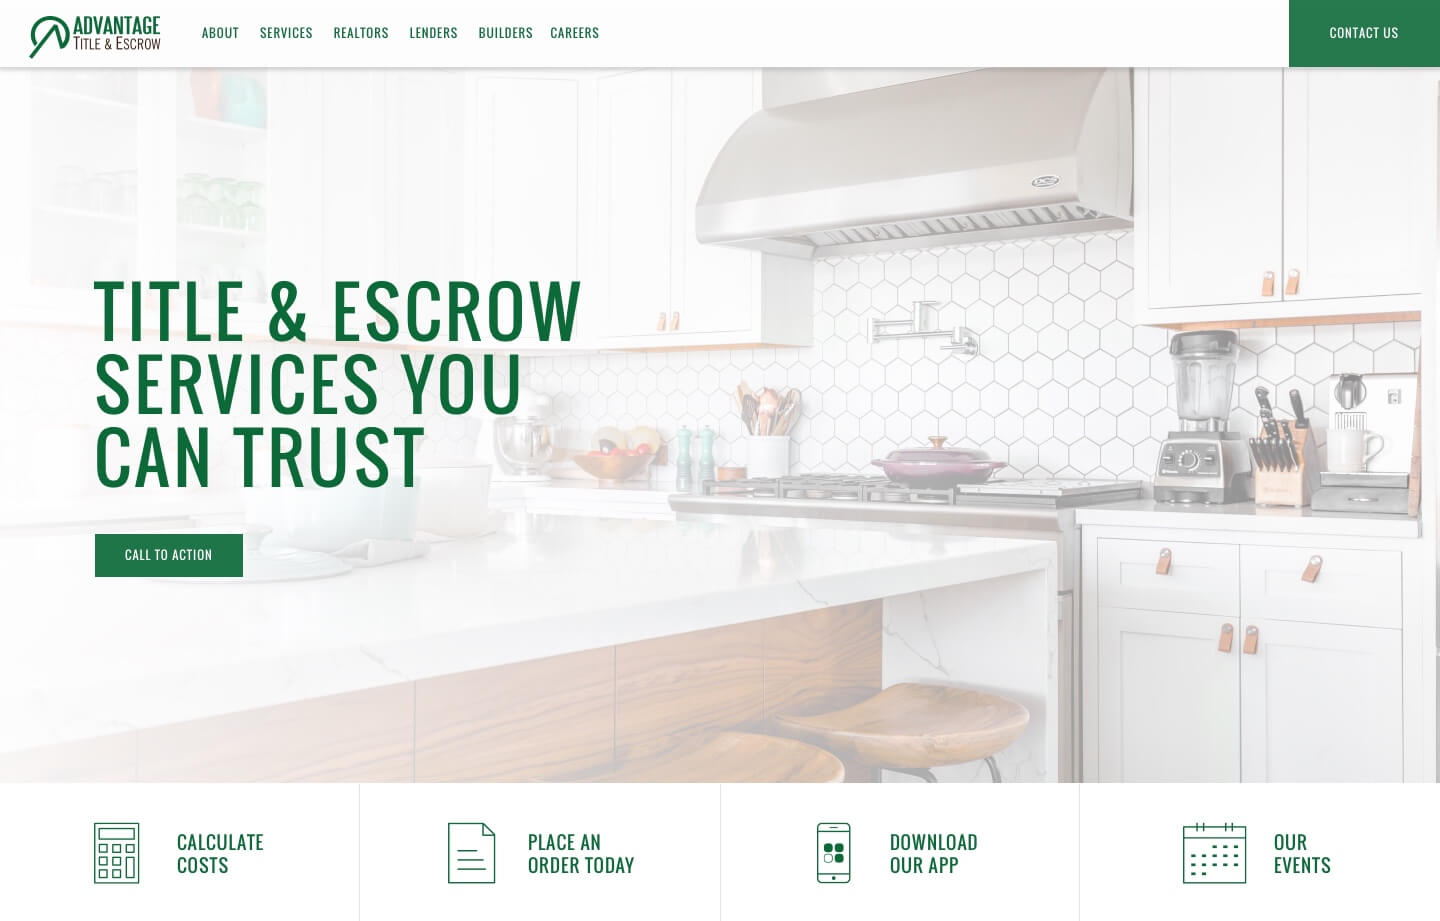 Title and Escrow service website for advantage title and escrow